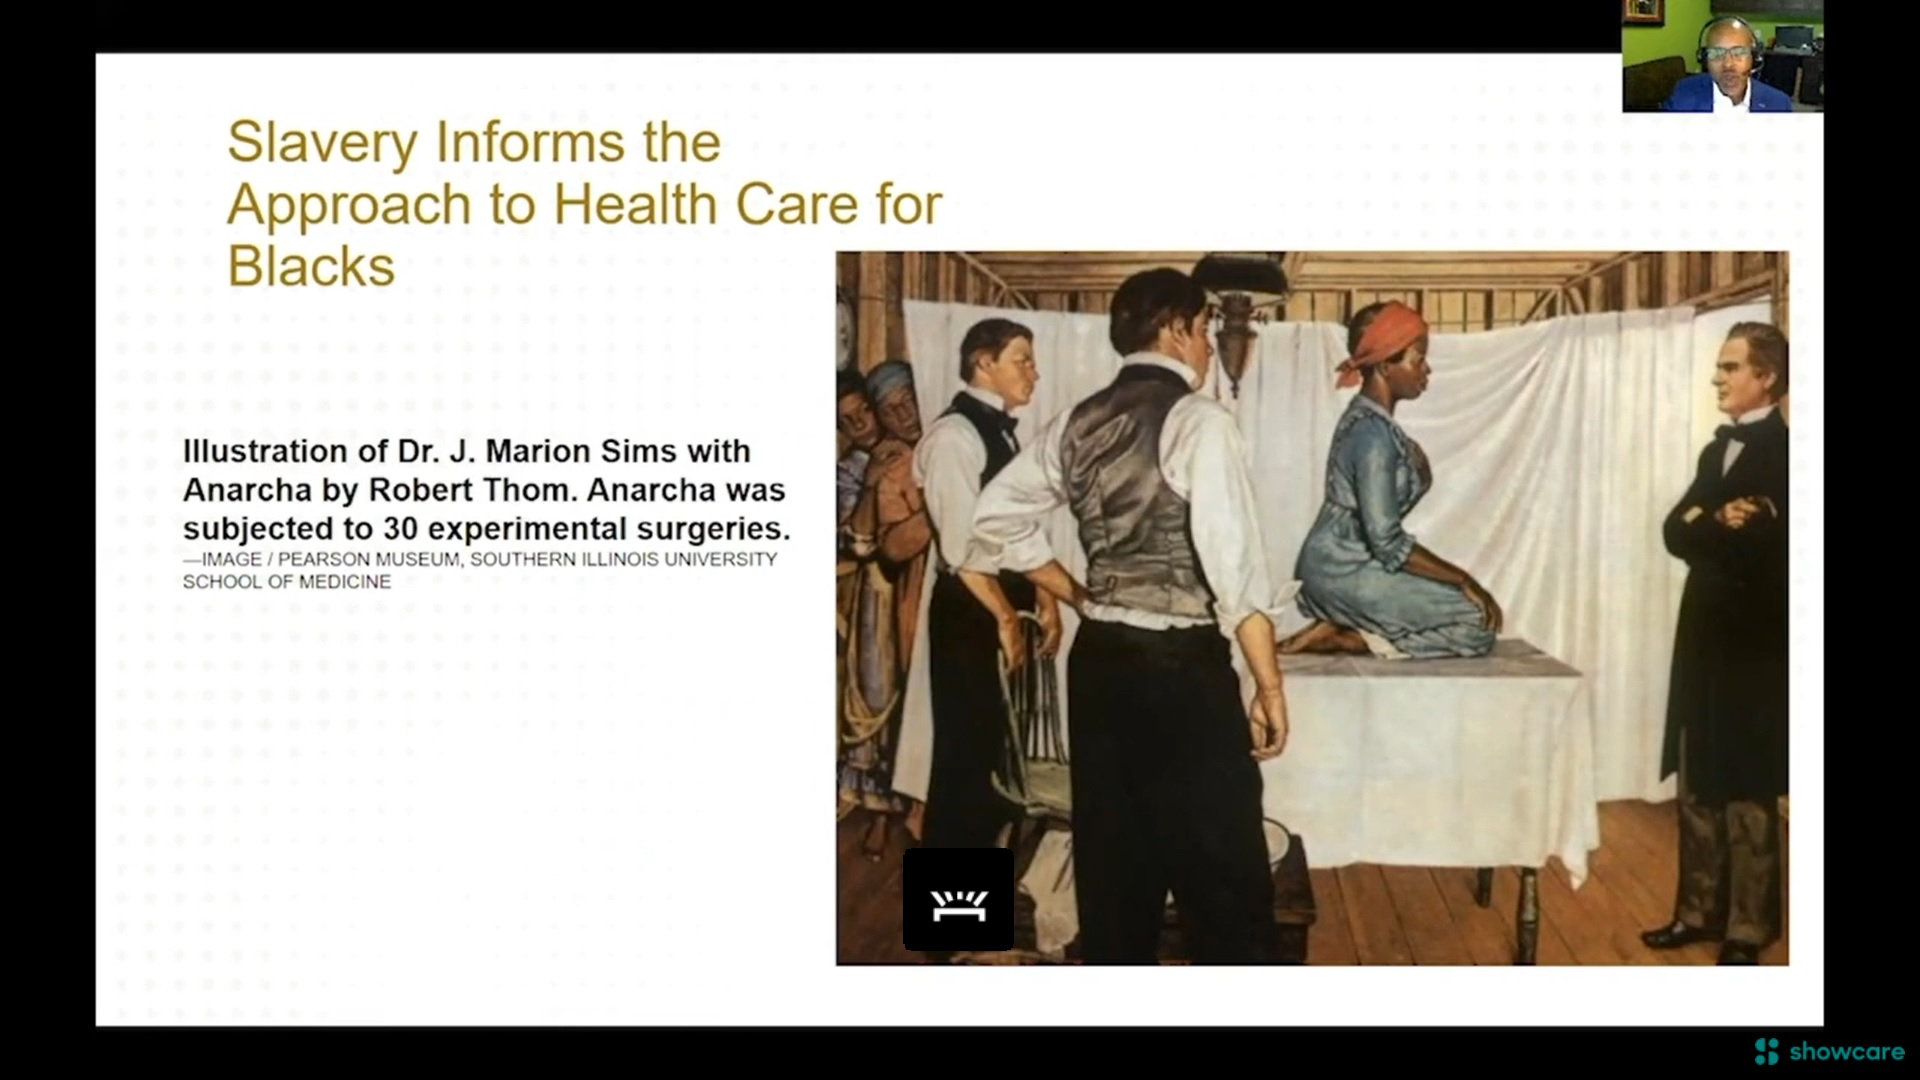 Slavery Informs the Approach to Healthcare for Blacks